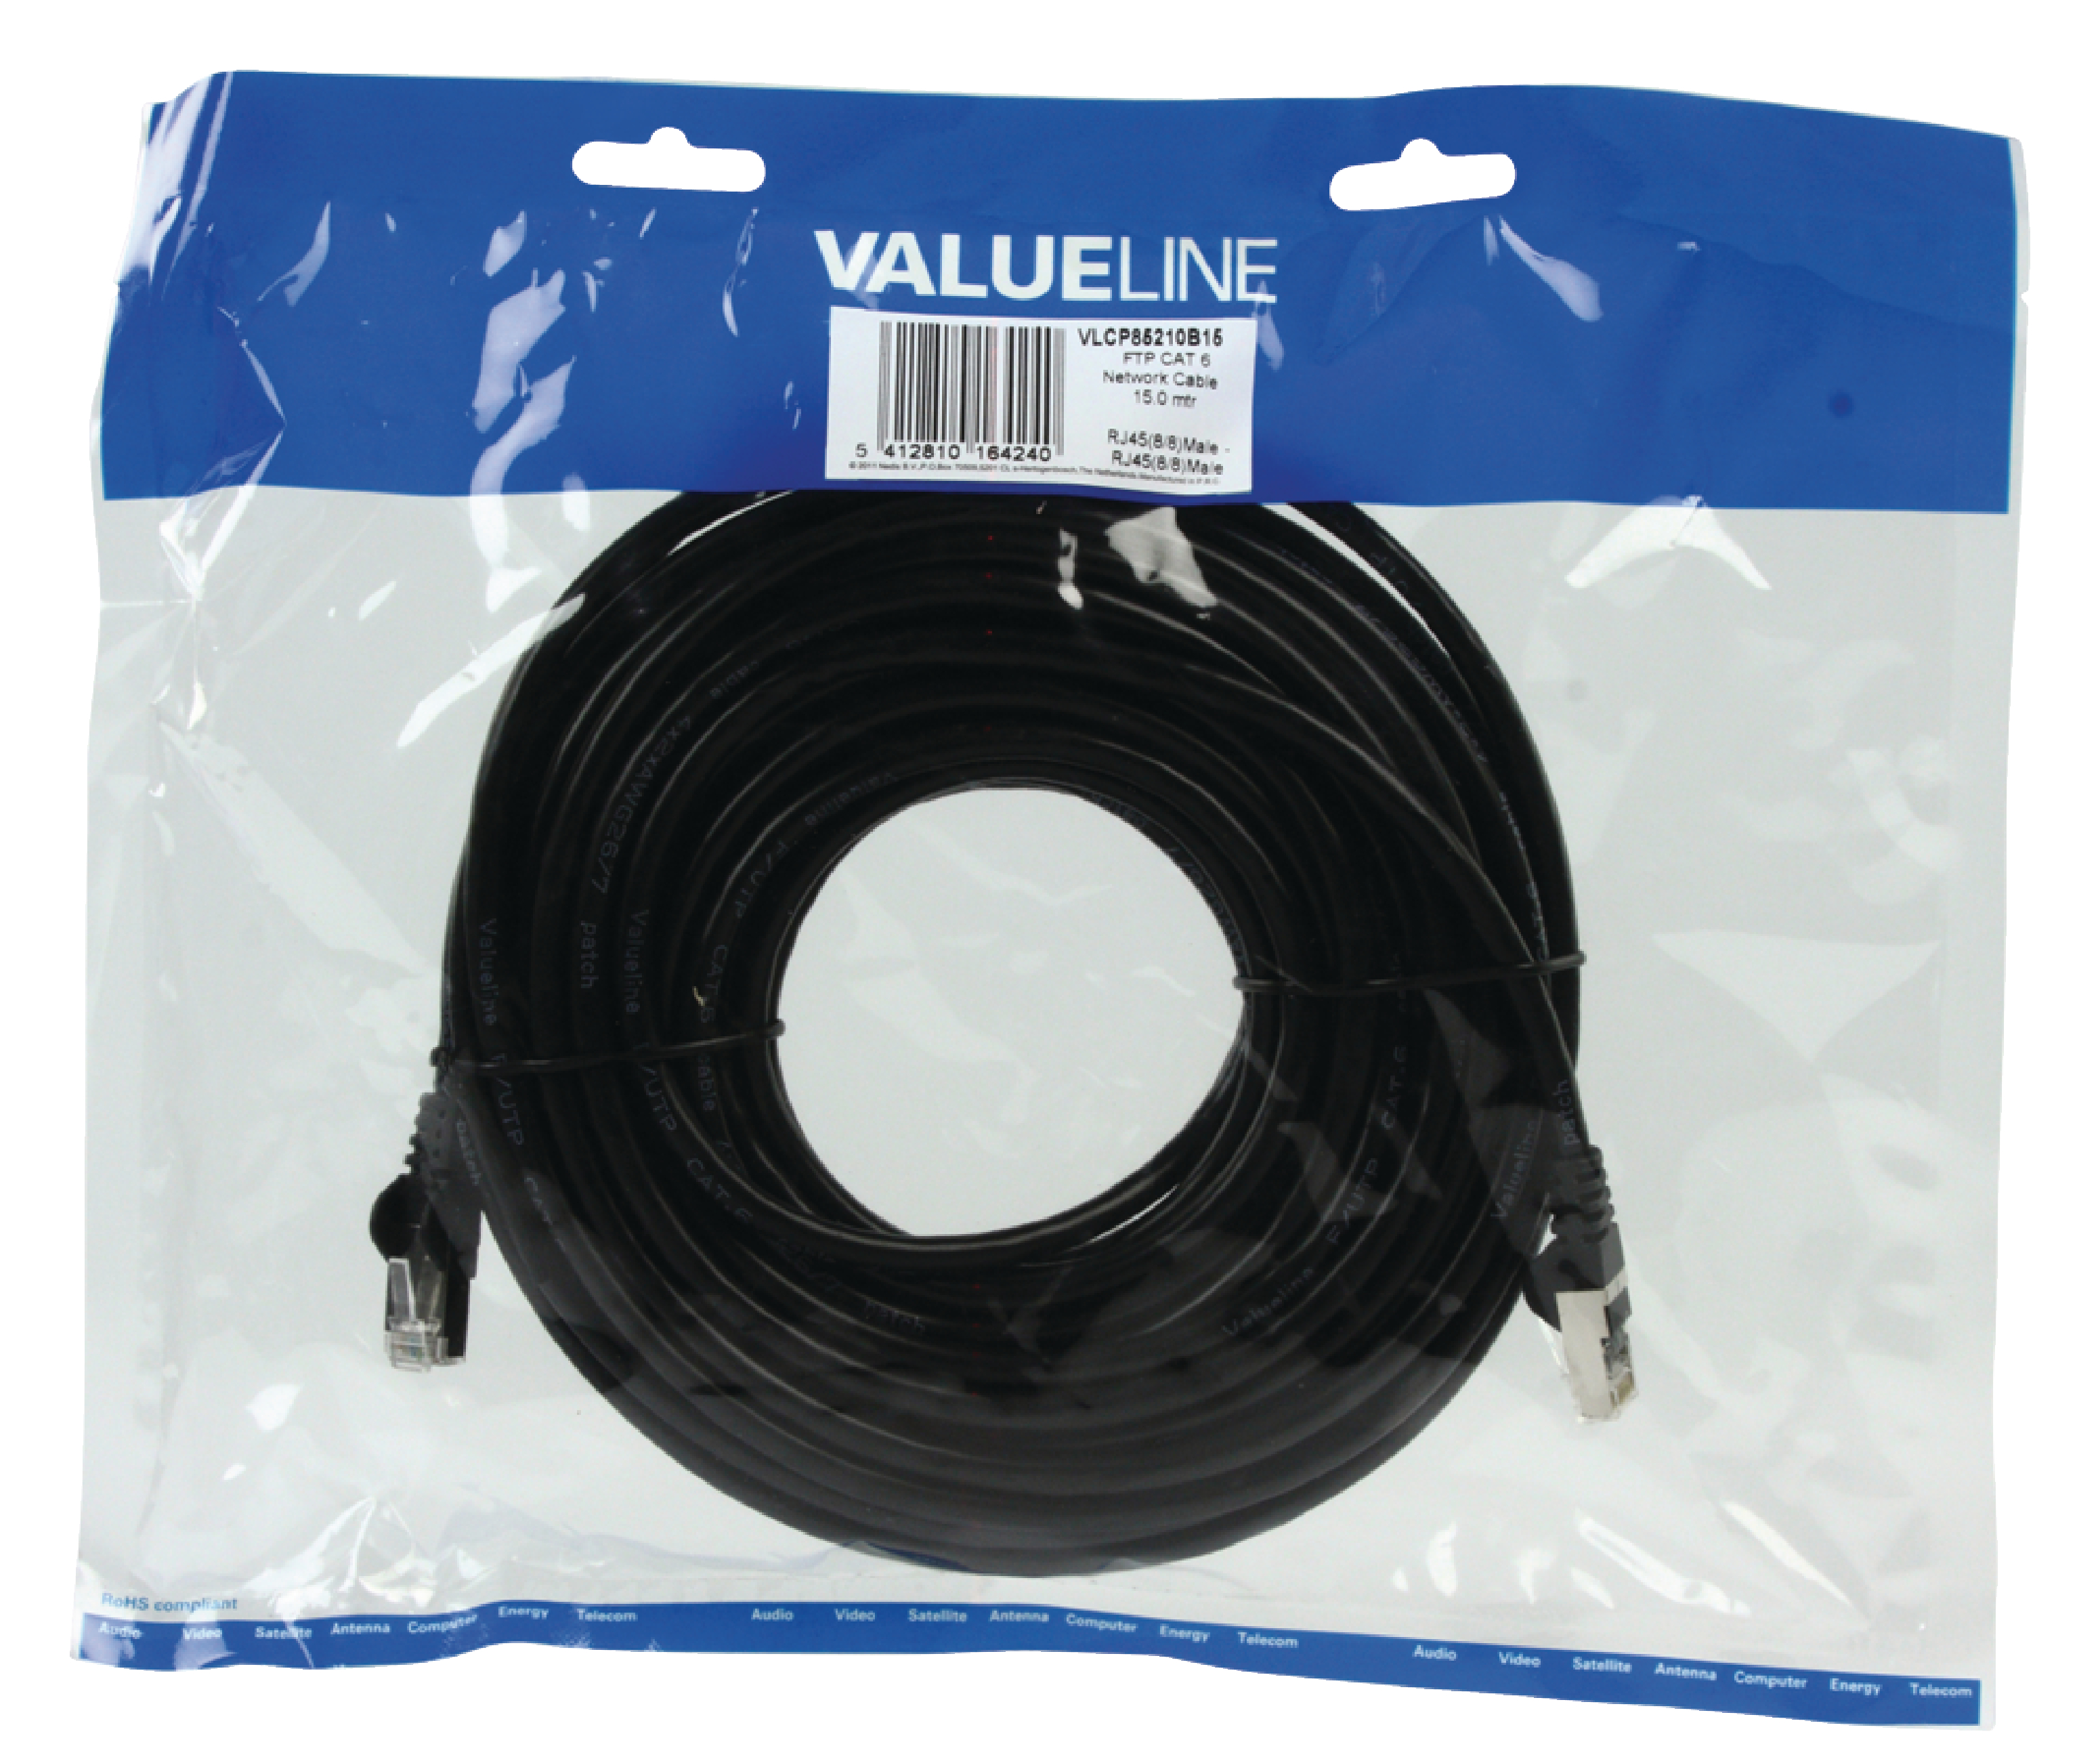 Valueline CAT6 F/UTP Netwerkkabel RJ45 (8/8) Male - RJ45 (8/8) Male 15.0 m Zwart